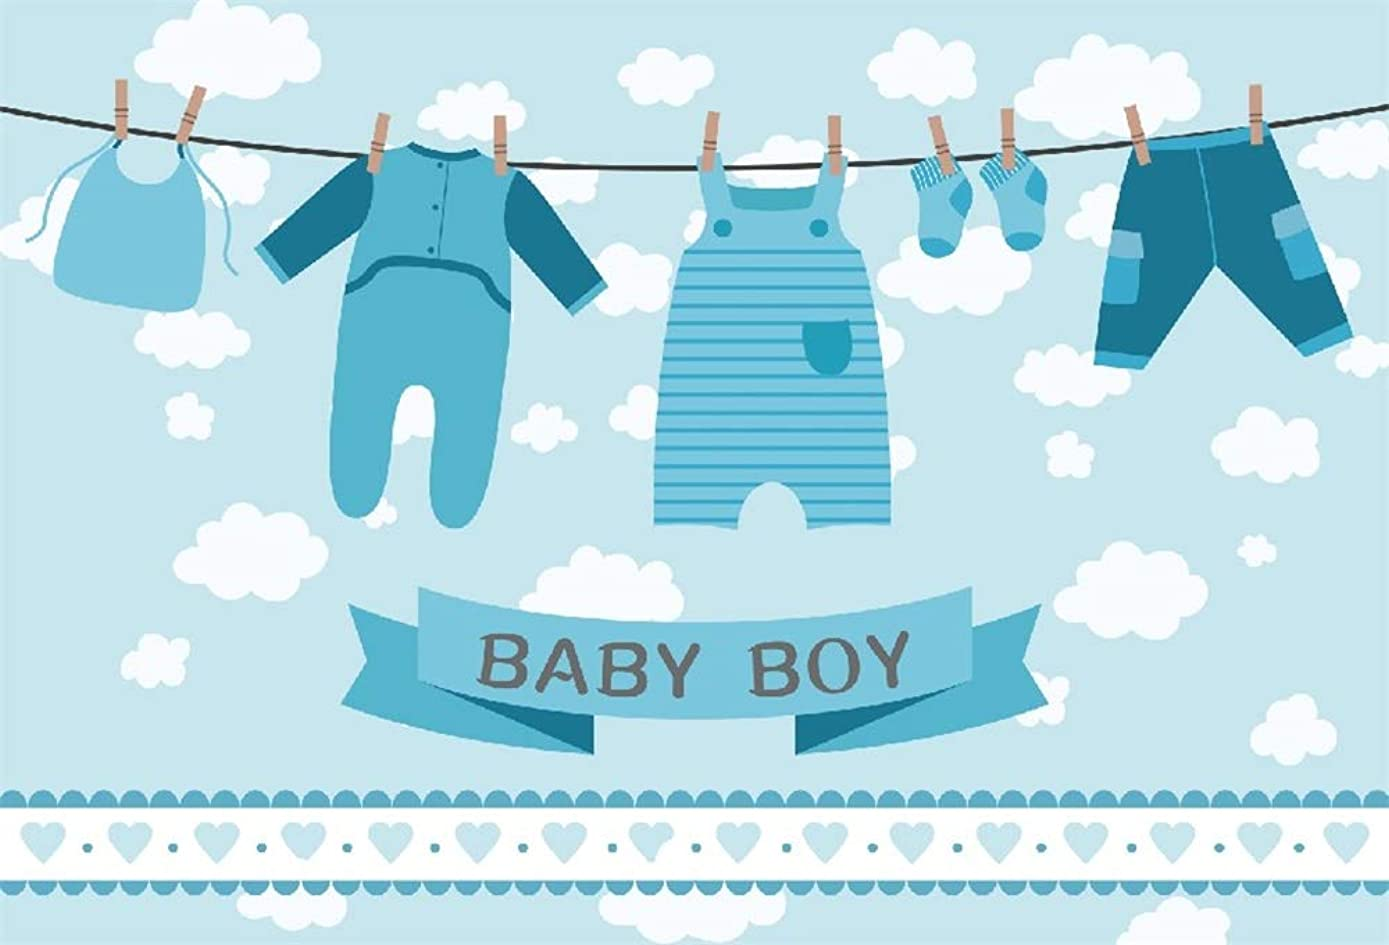 DaShan 5x3ft Polyester Photography Backdrop Baby Shower Boy Rompers Socks Pants Napkin on Clothesline White Clouds Background for Birthday Party Banner Picture Taking YouTube Photo Studio Props